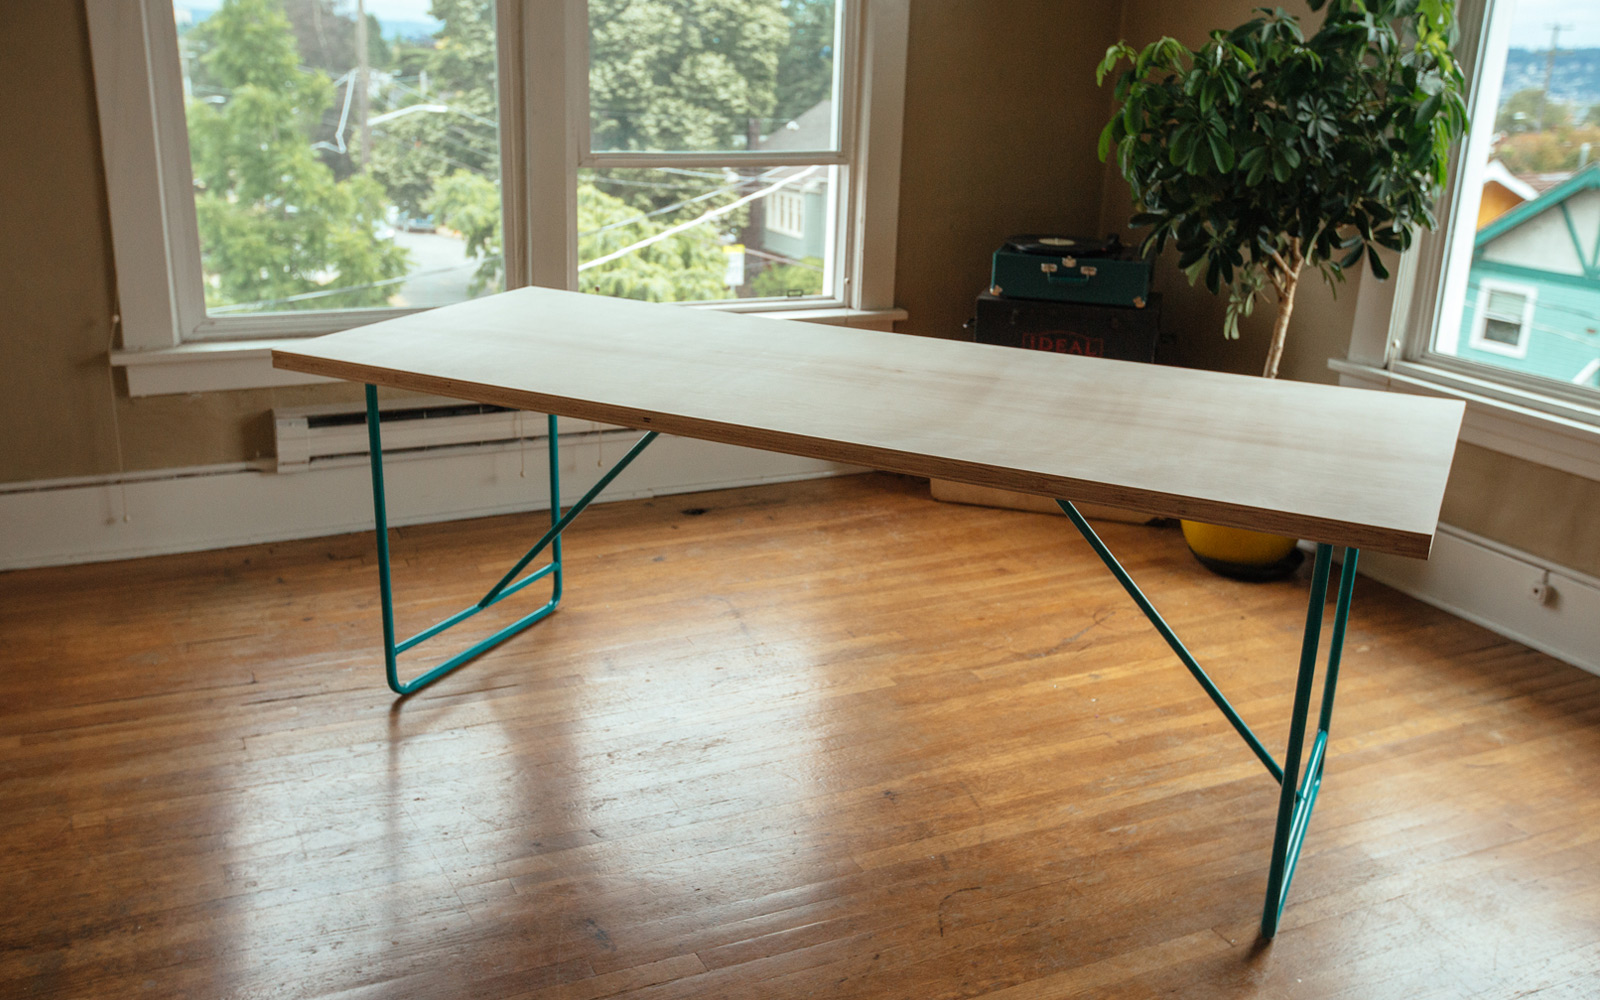 https://s3-us-west-2.amazonaws.com/dunndiy.com/project-images/Dunn-DIY-Seattle-WA-Dining-Table-21.jpg